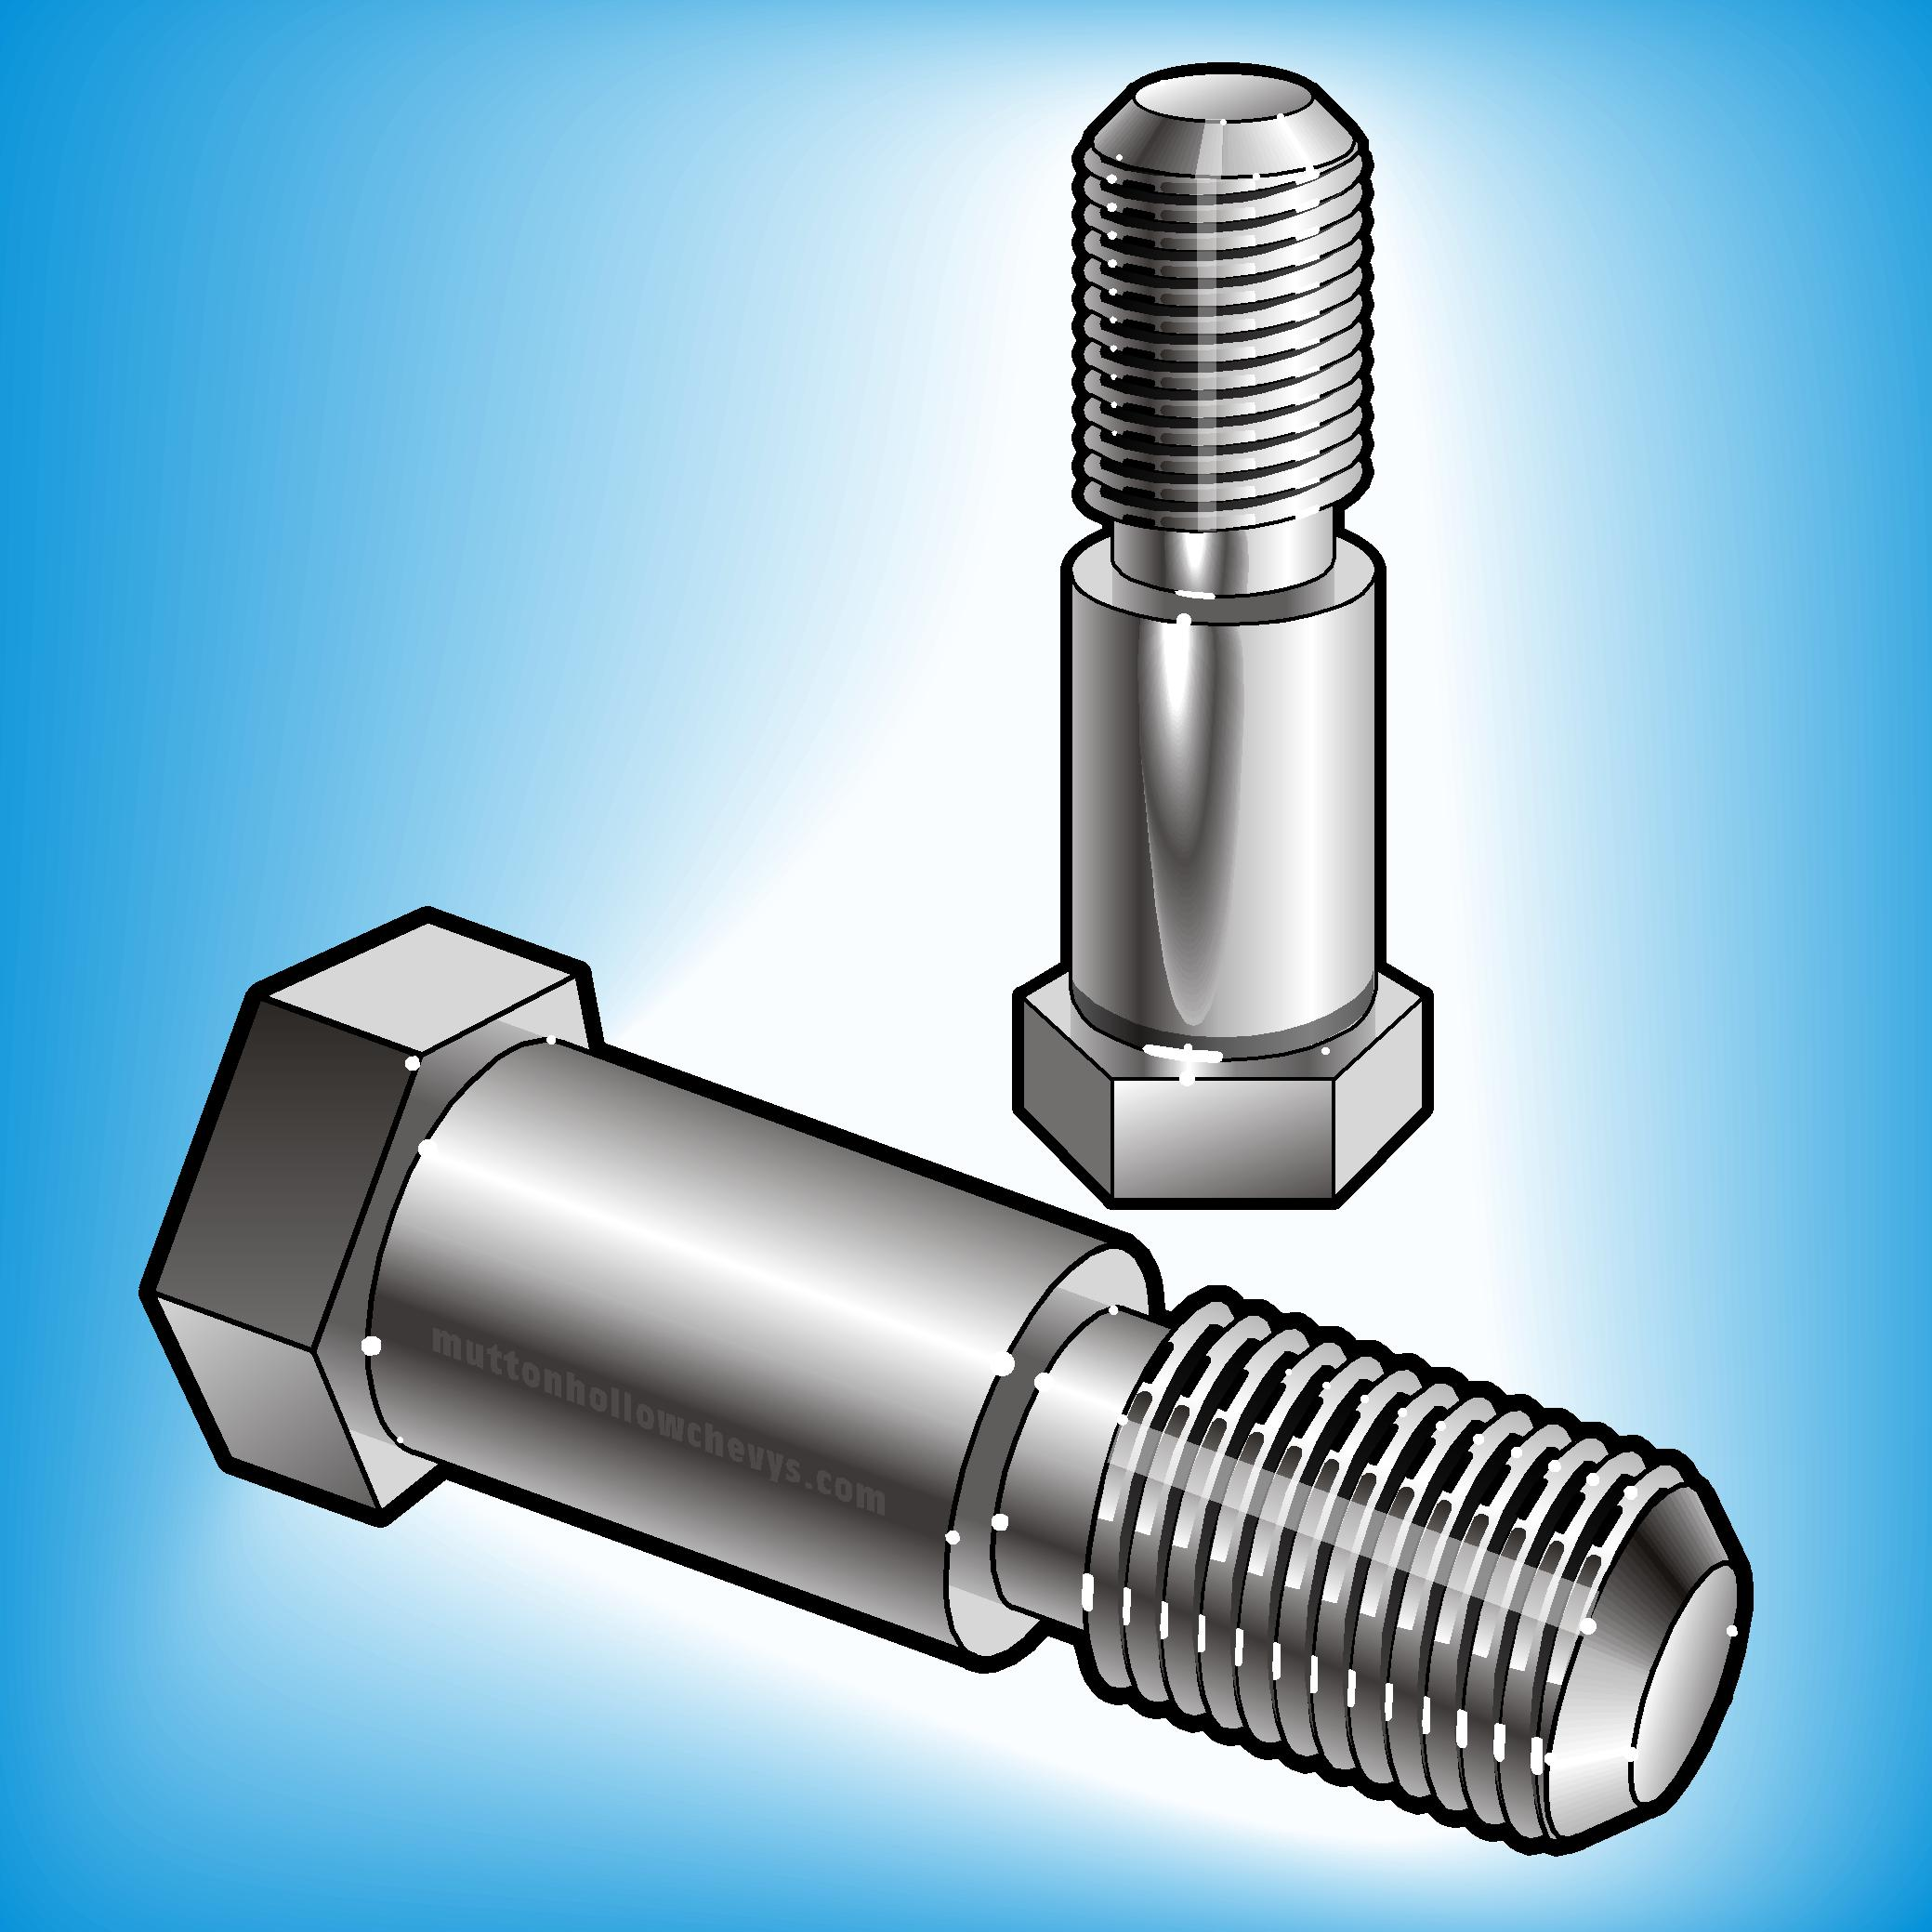 Bolts, Clips, Screws